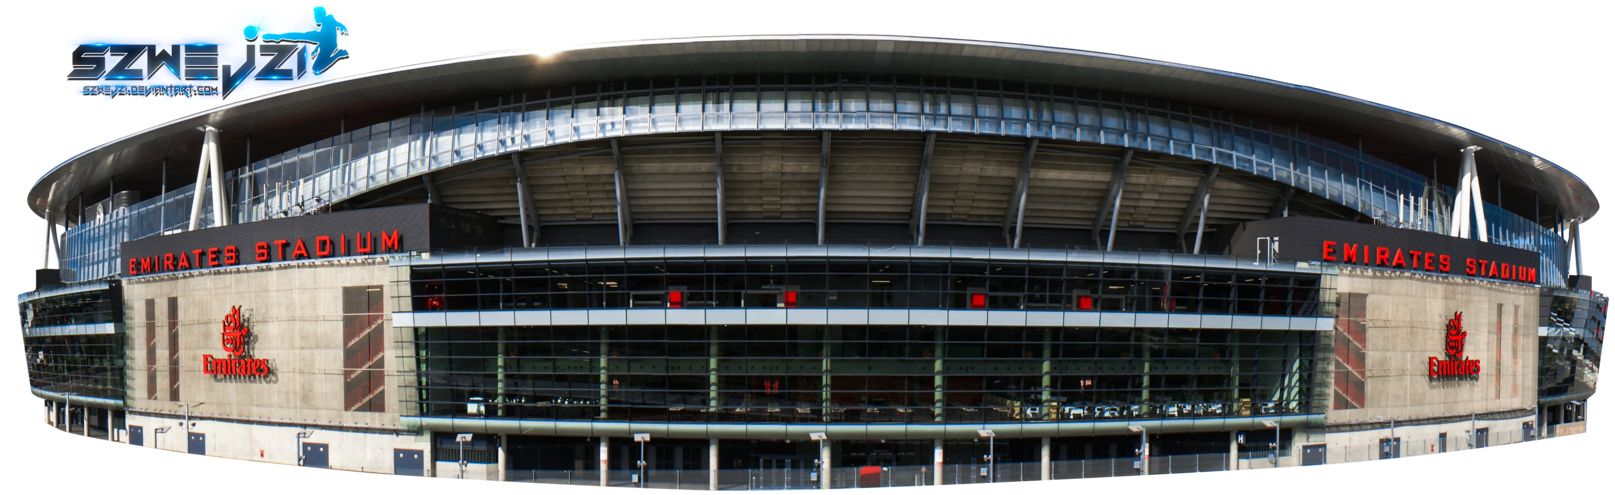 Emirates by szwejzi on. Cup clipart stadium